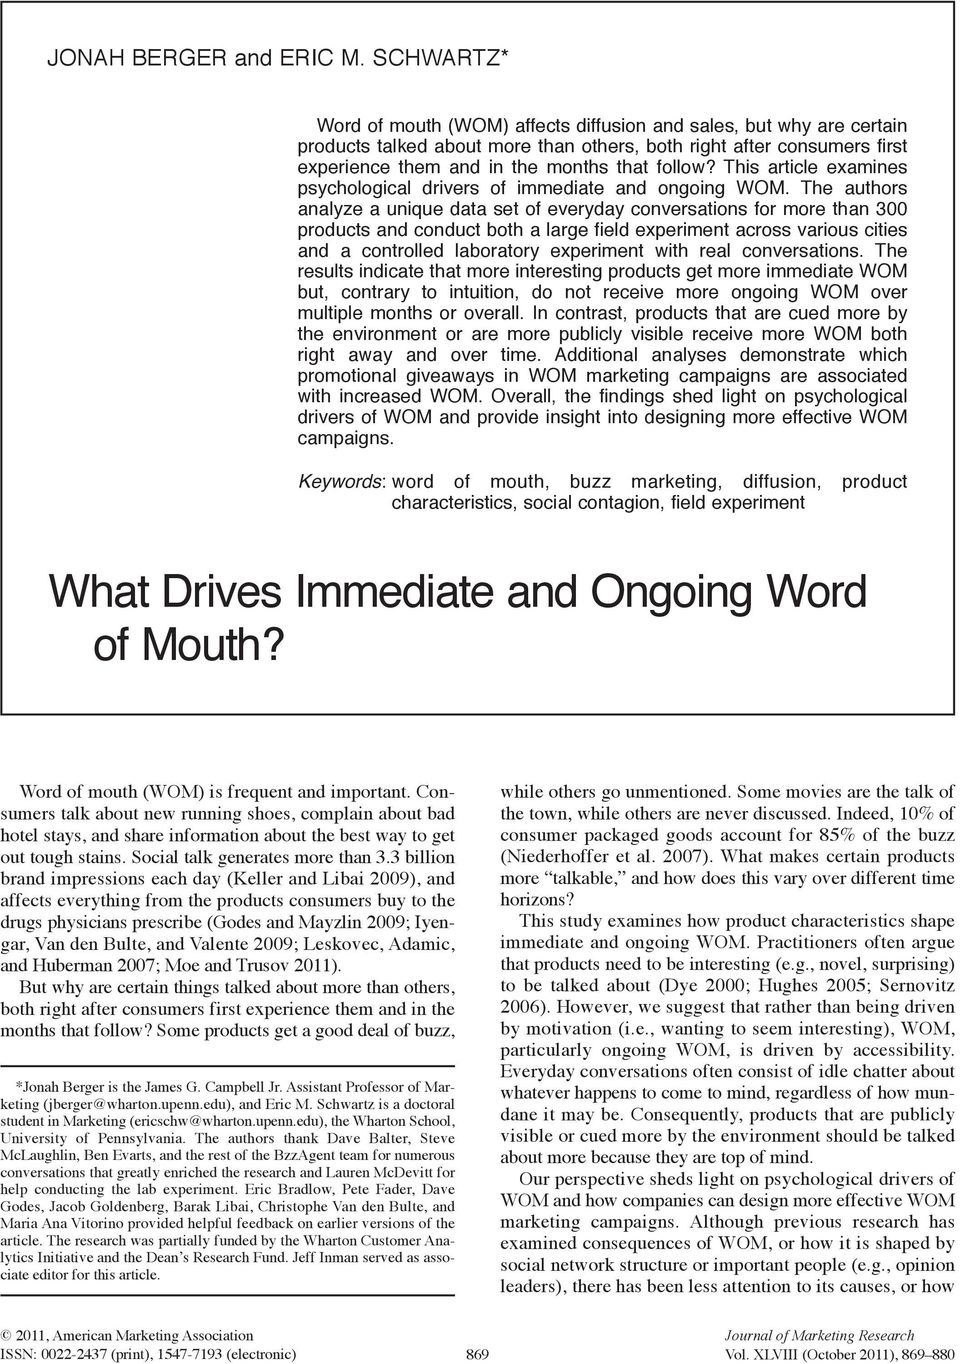 this article examines psychological drivers of immediate and ongoing wom.